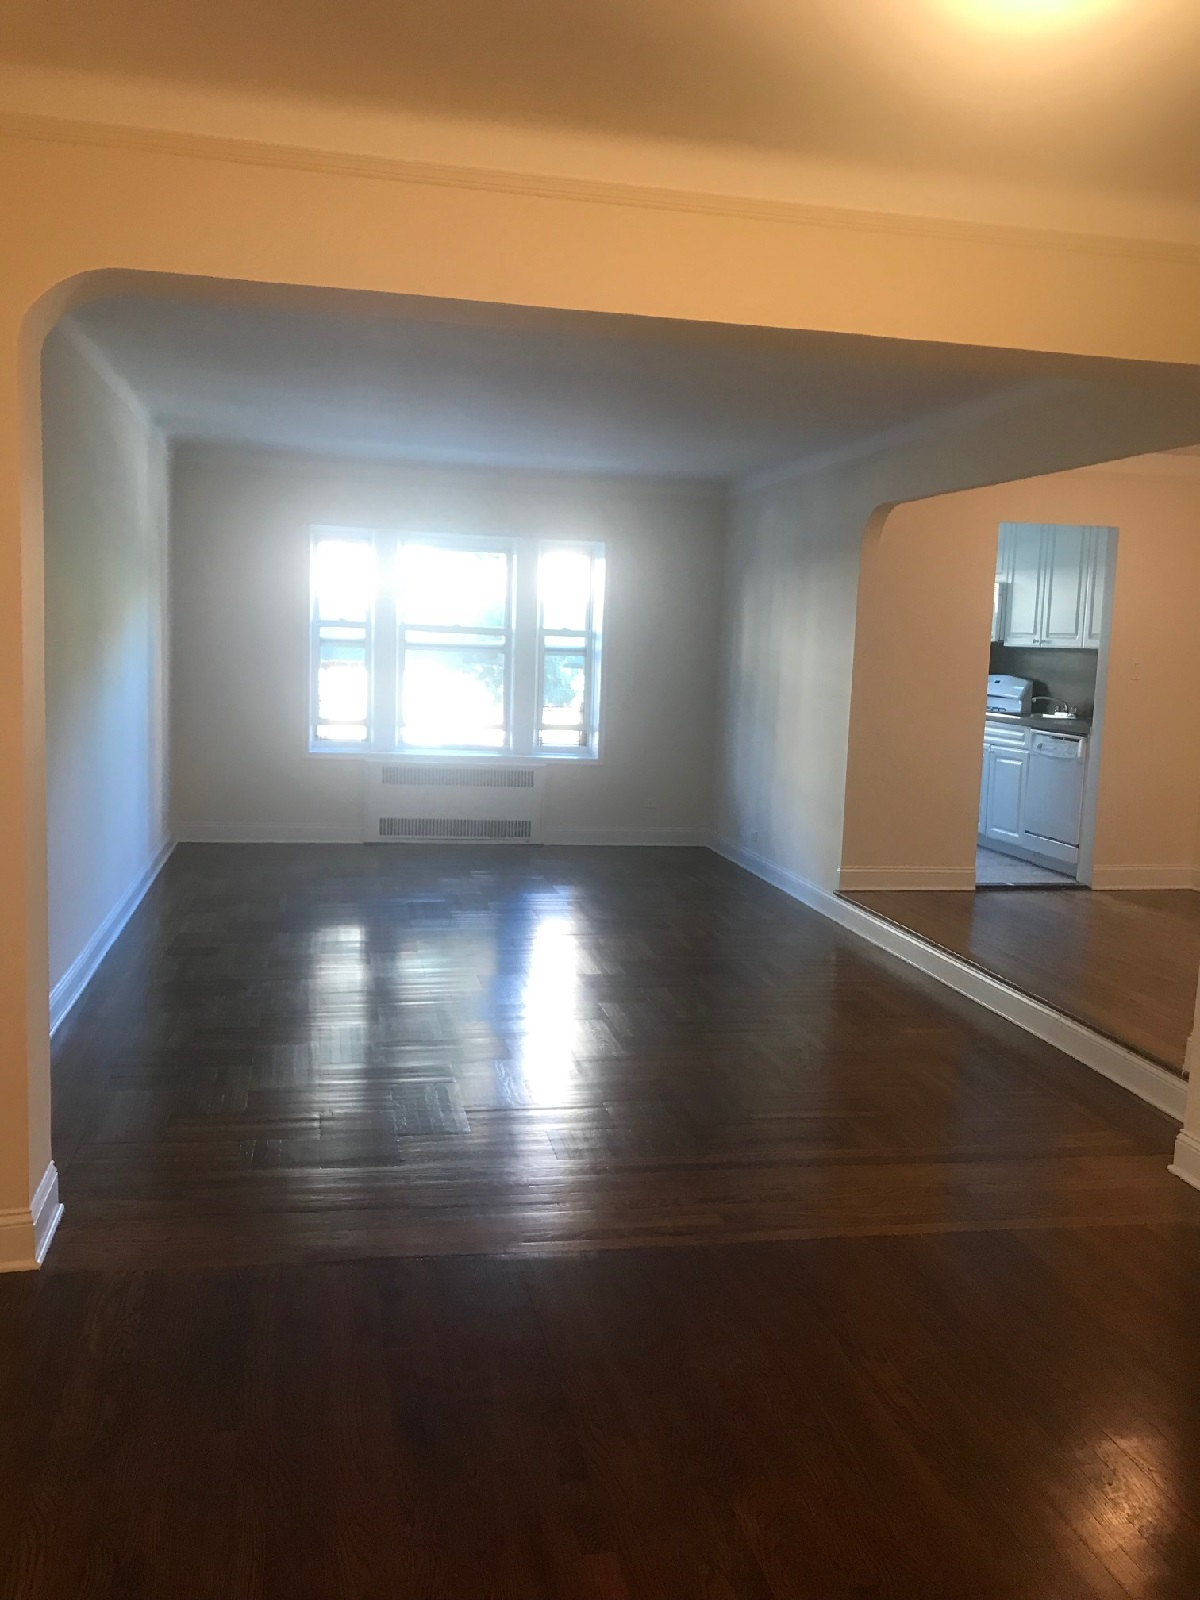 Apartment in Forest Hills - Forest Hills Ny 11375  Queens, NY 11375